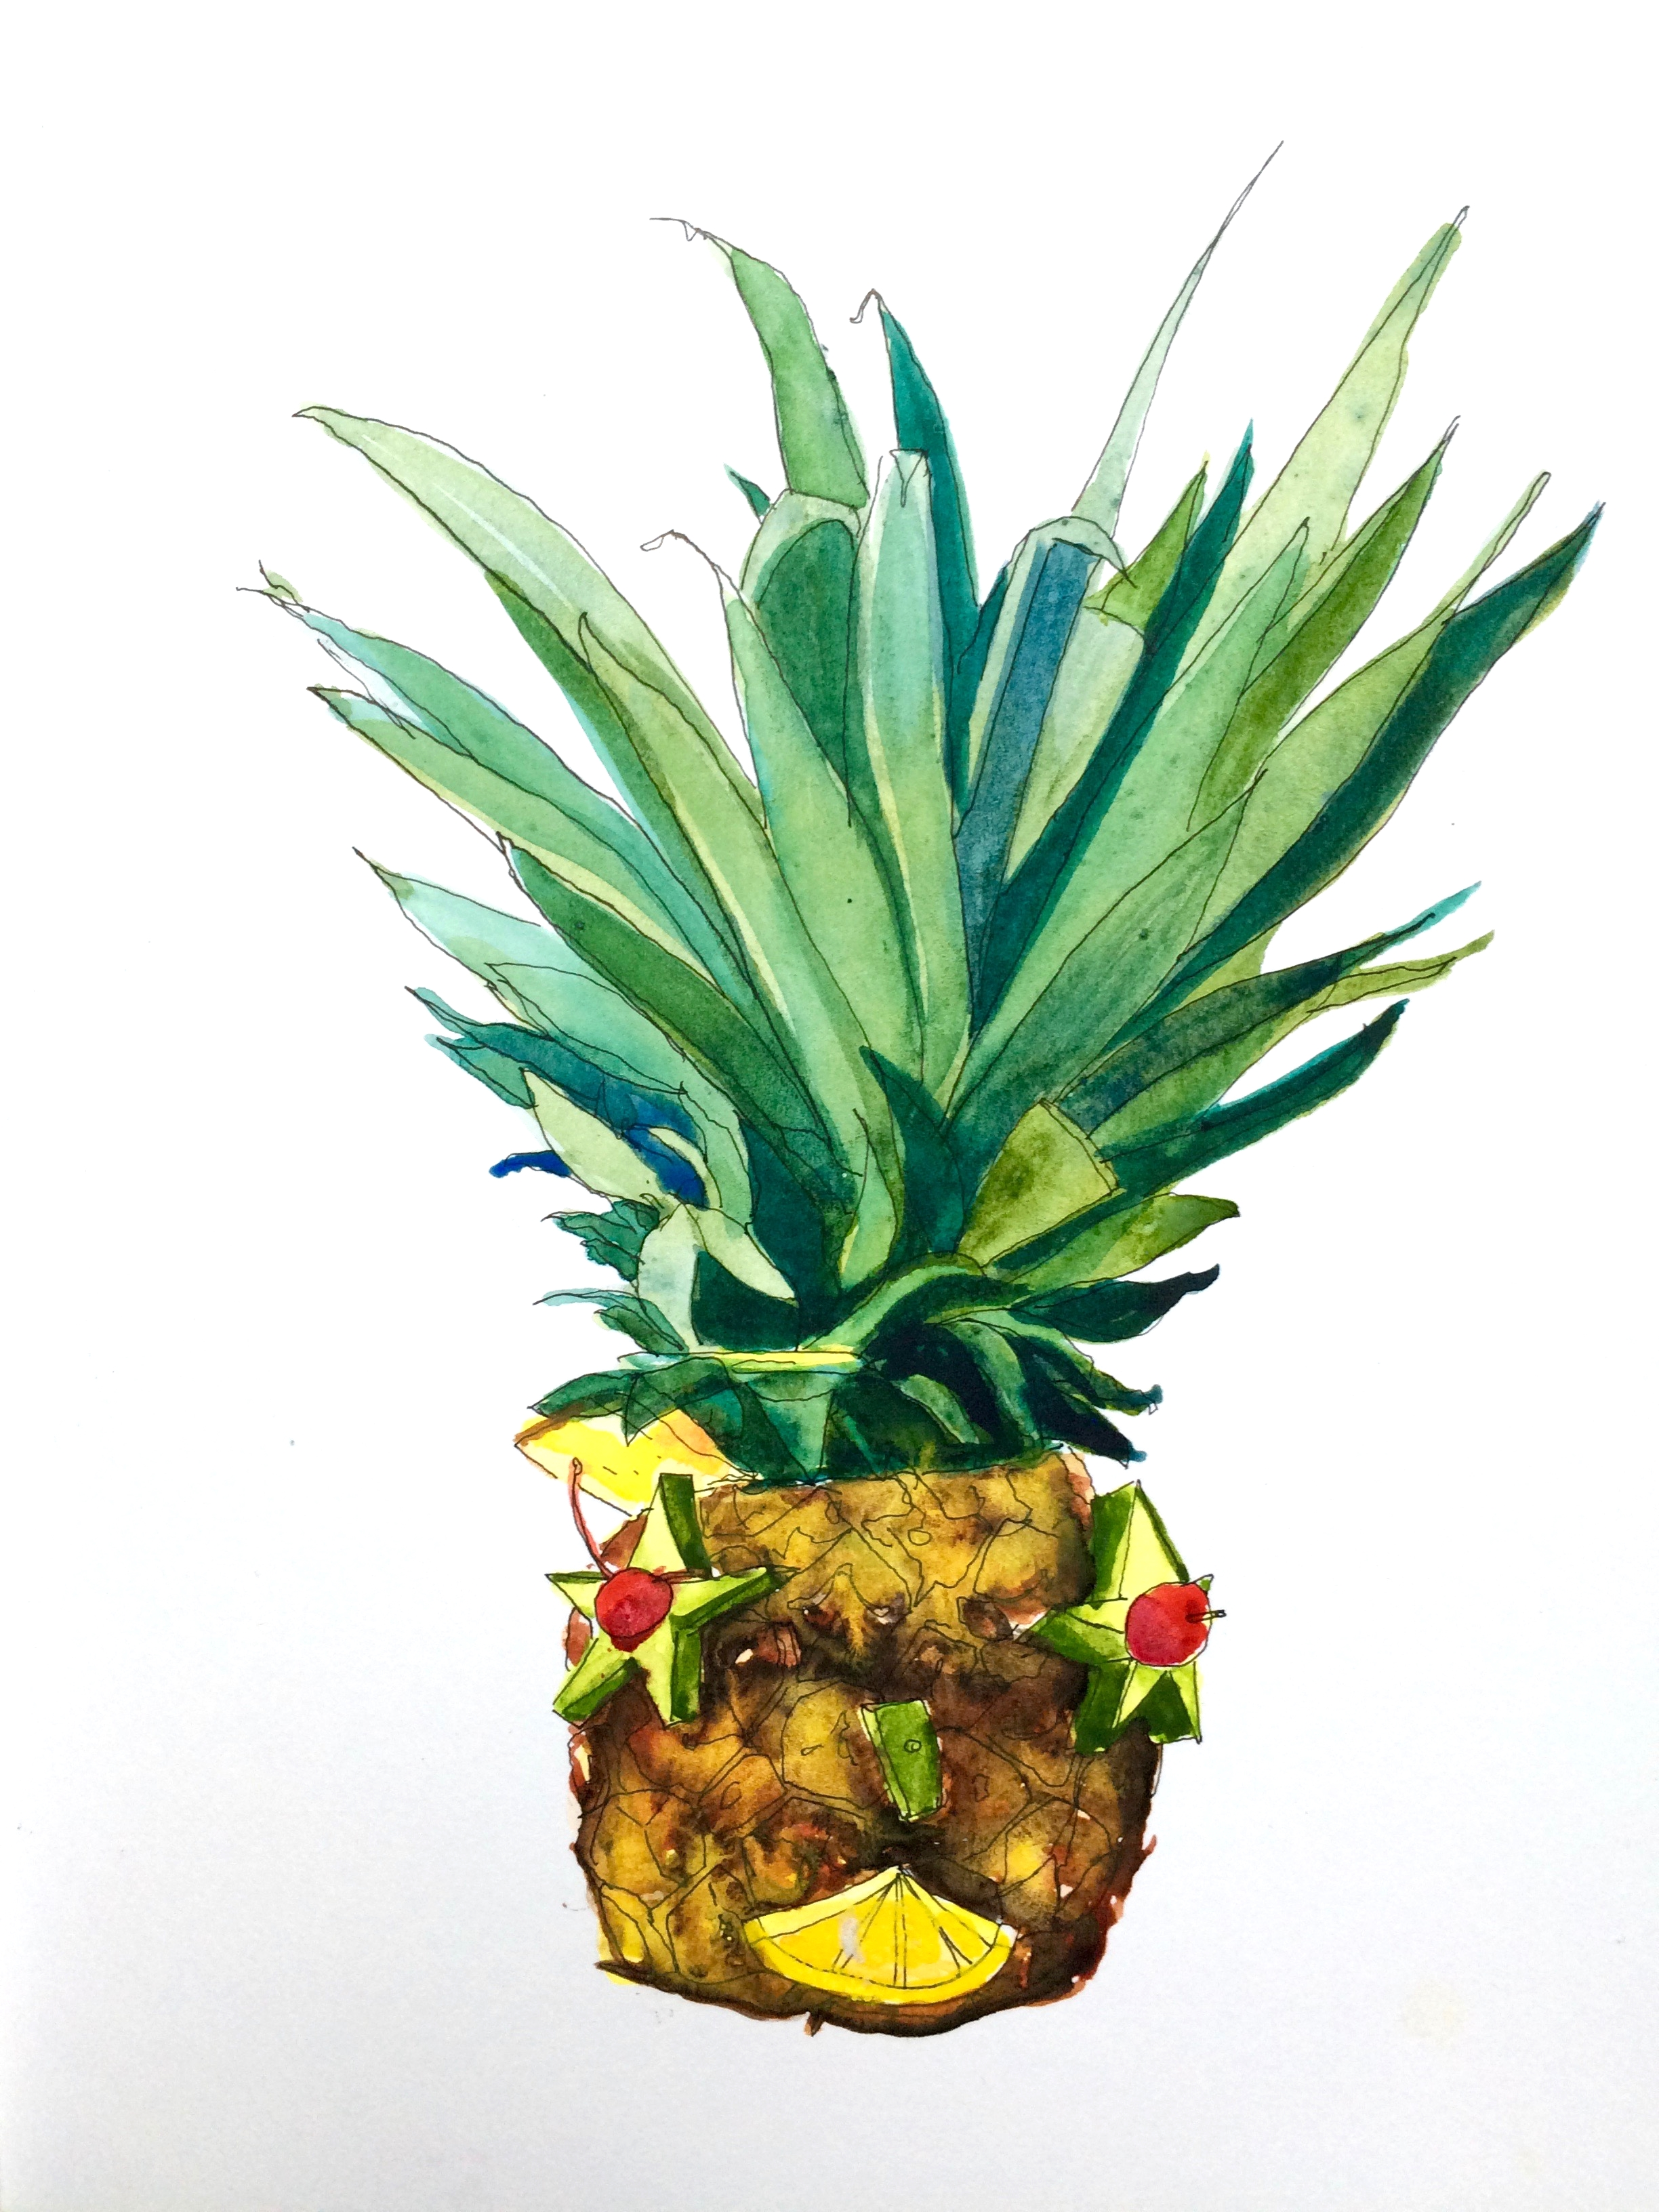 This was Mandy's handsome cocktail, served in a pineapple. ¡Salud!